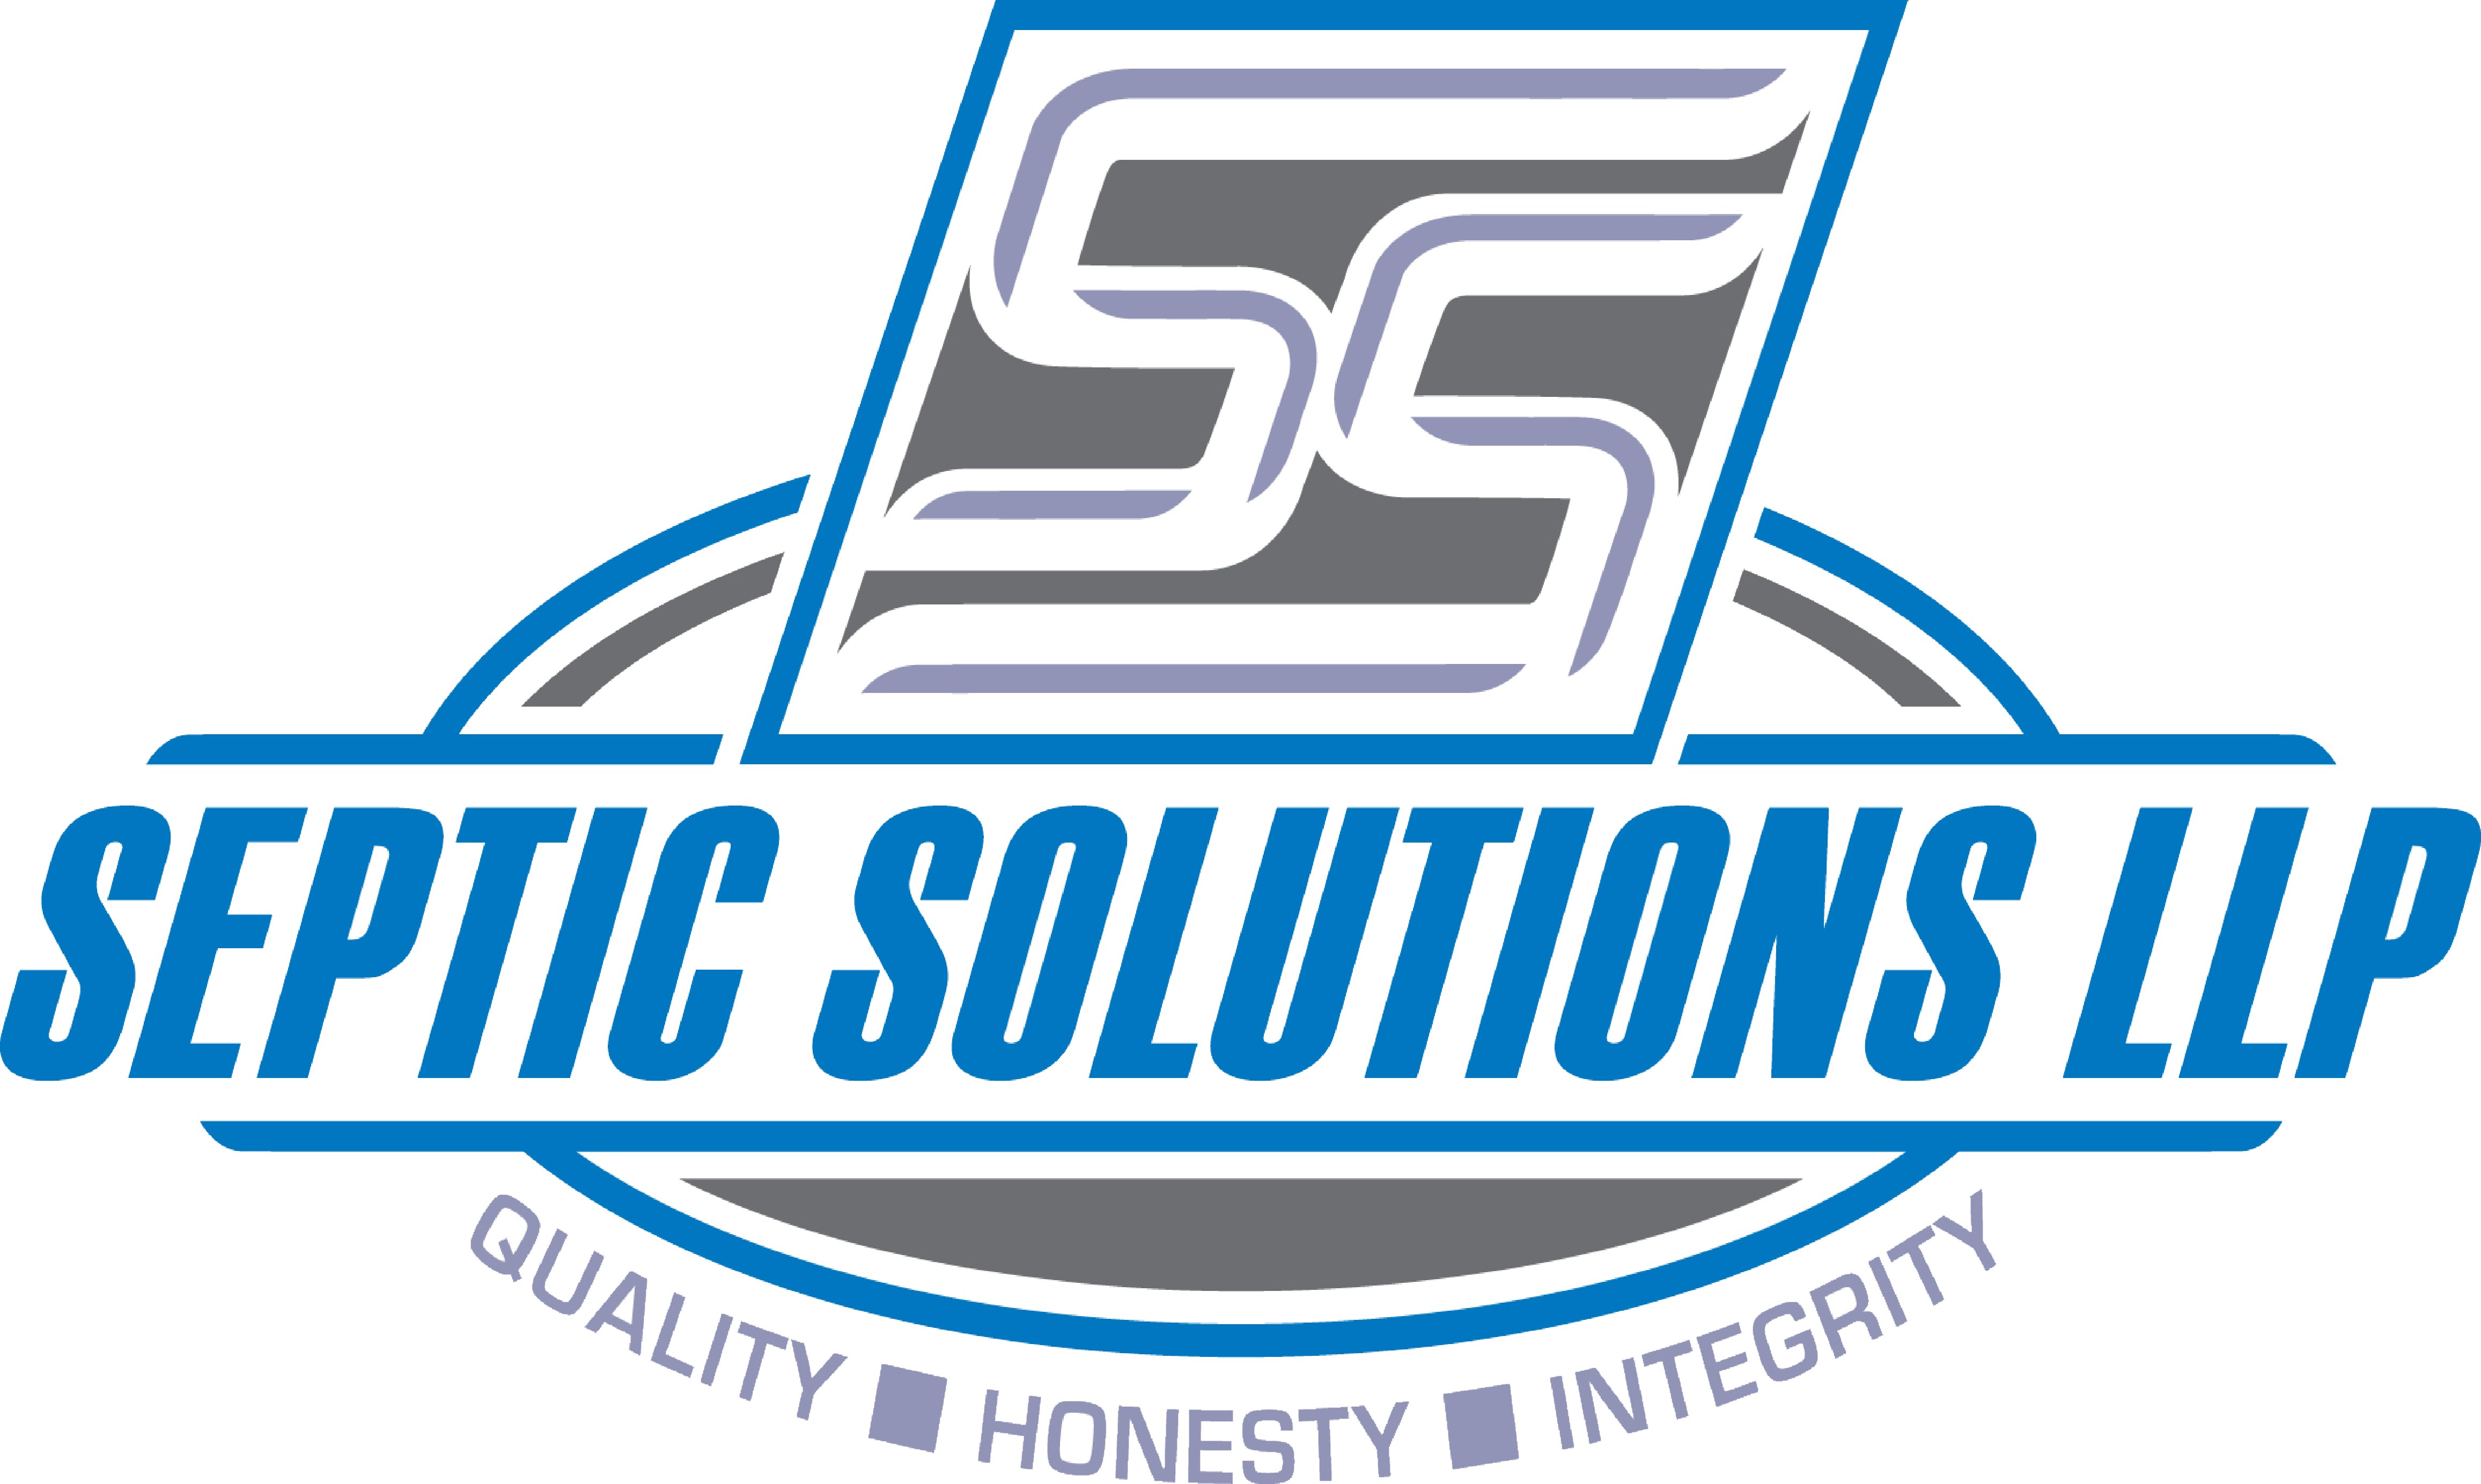 Septic Solutions logo